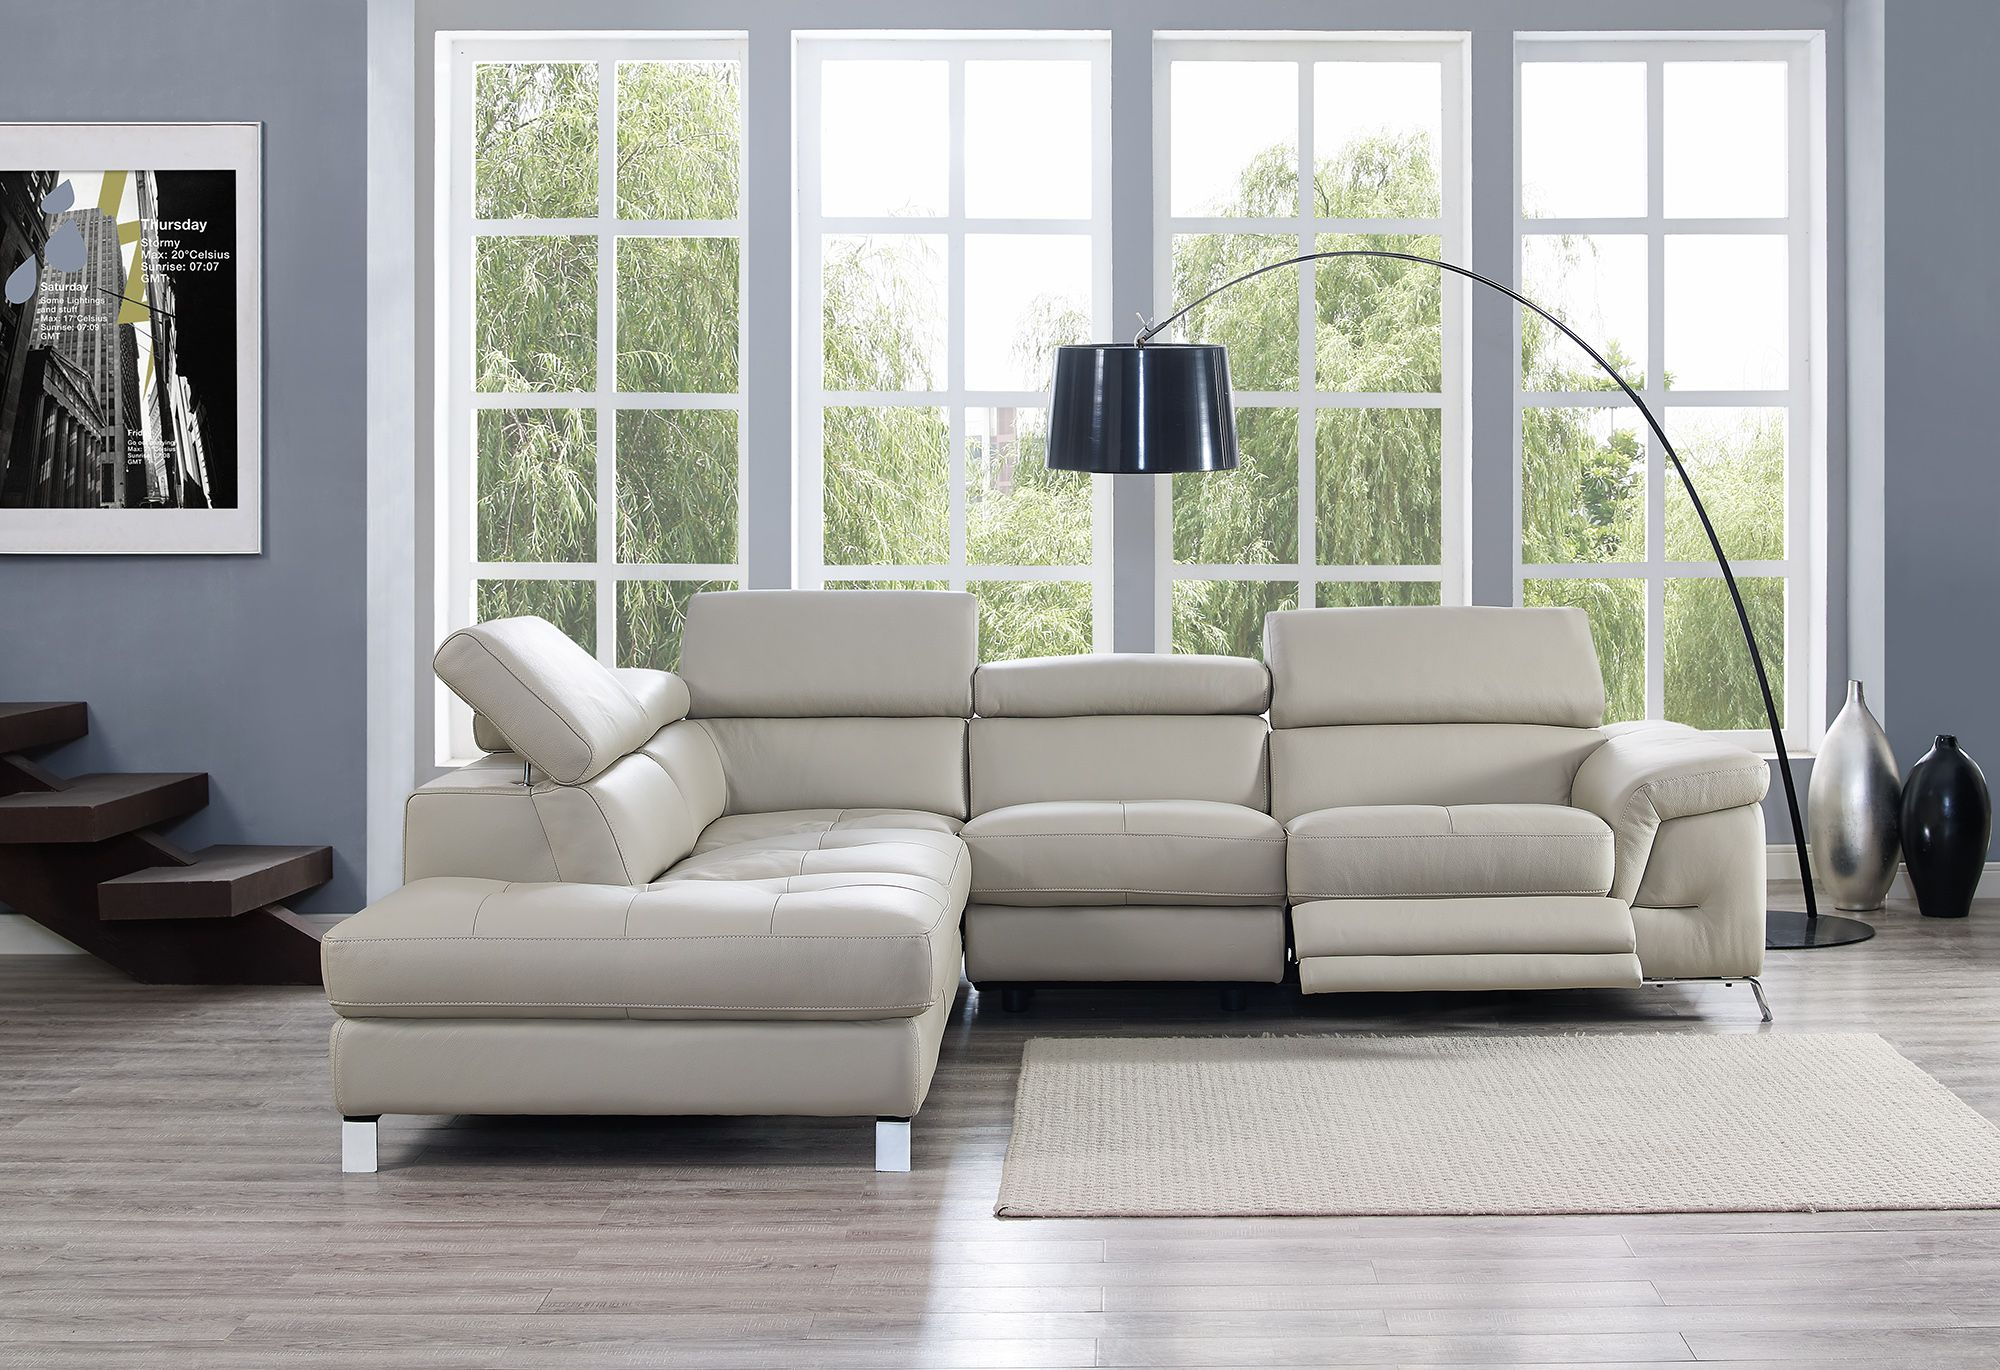 Elegant Furniture Italian Leather Upholstery Reclining Sectional